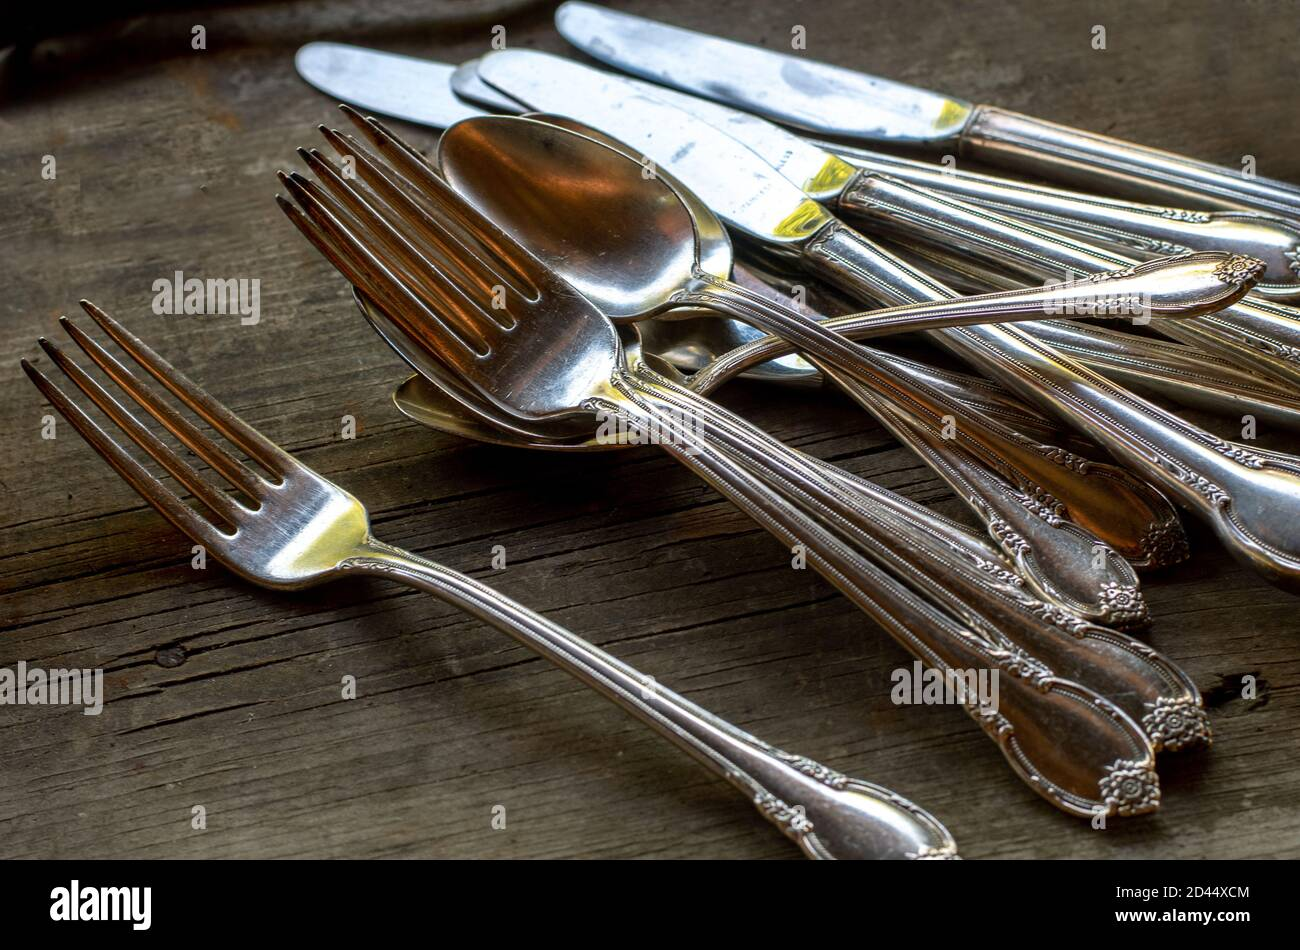 Fancy forks, knives and spoons are set out on a table, to be spread out for dinner Stock Photo